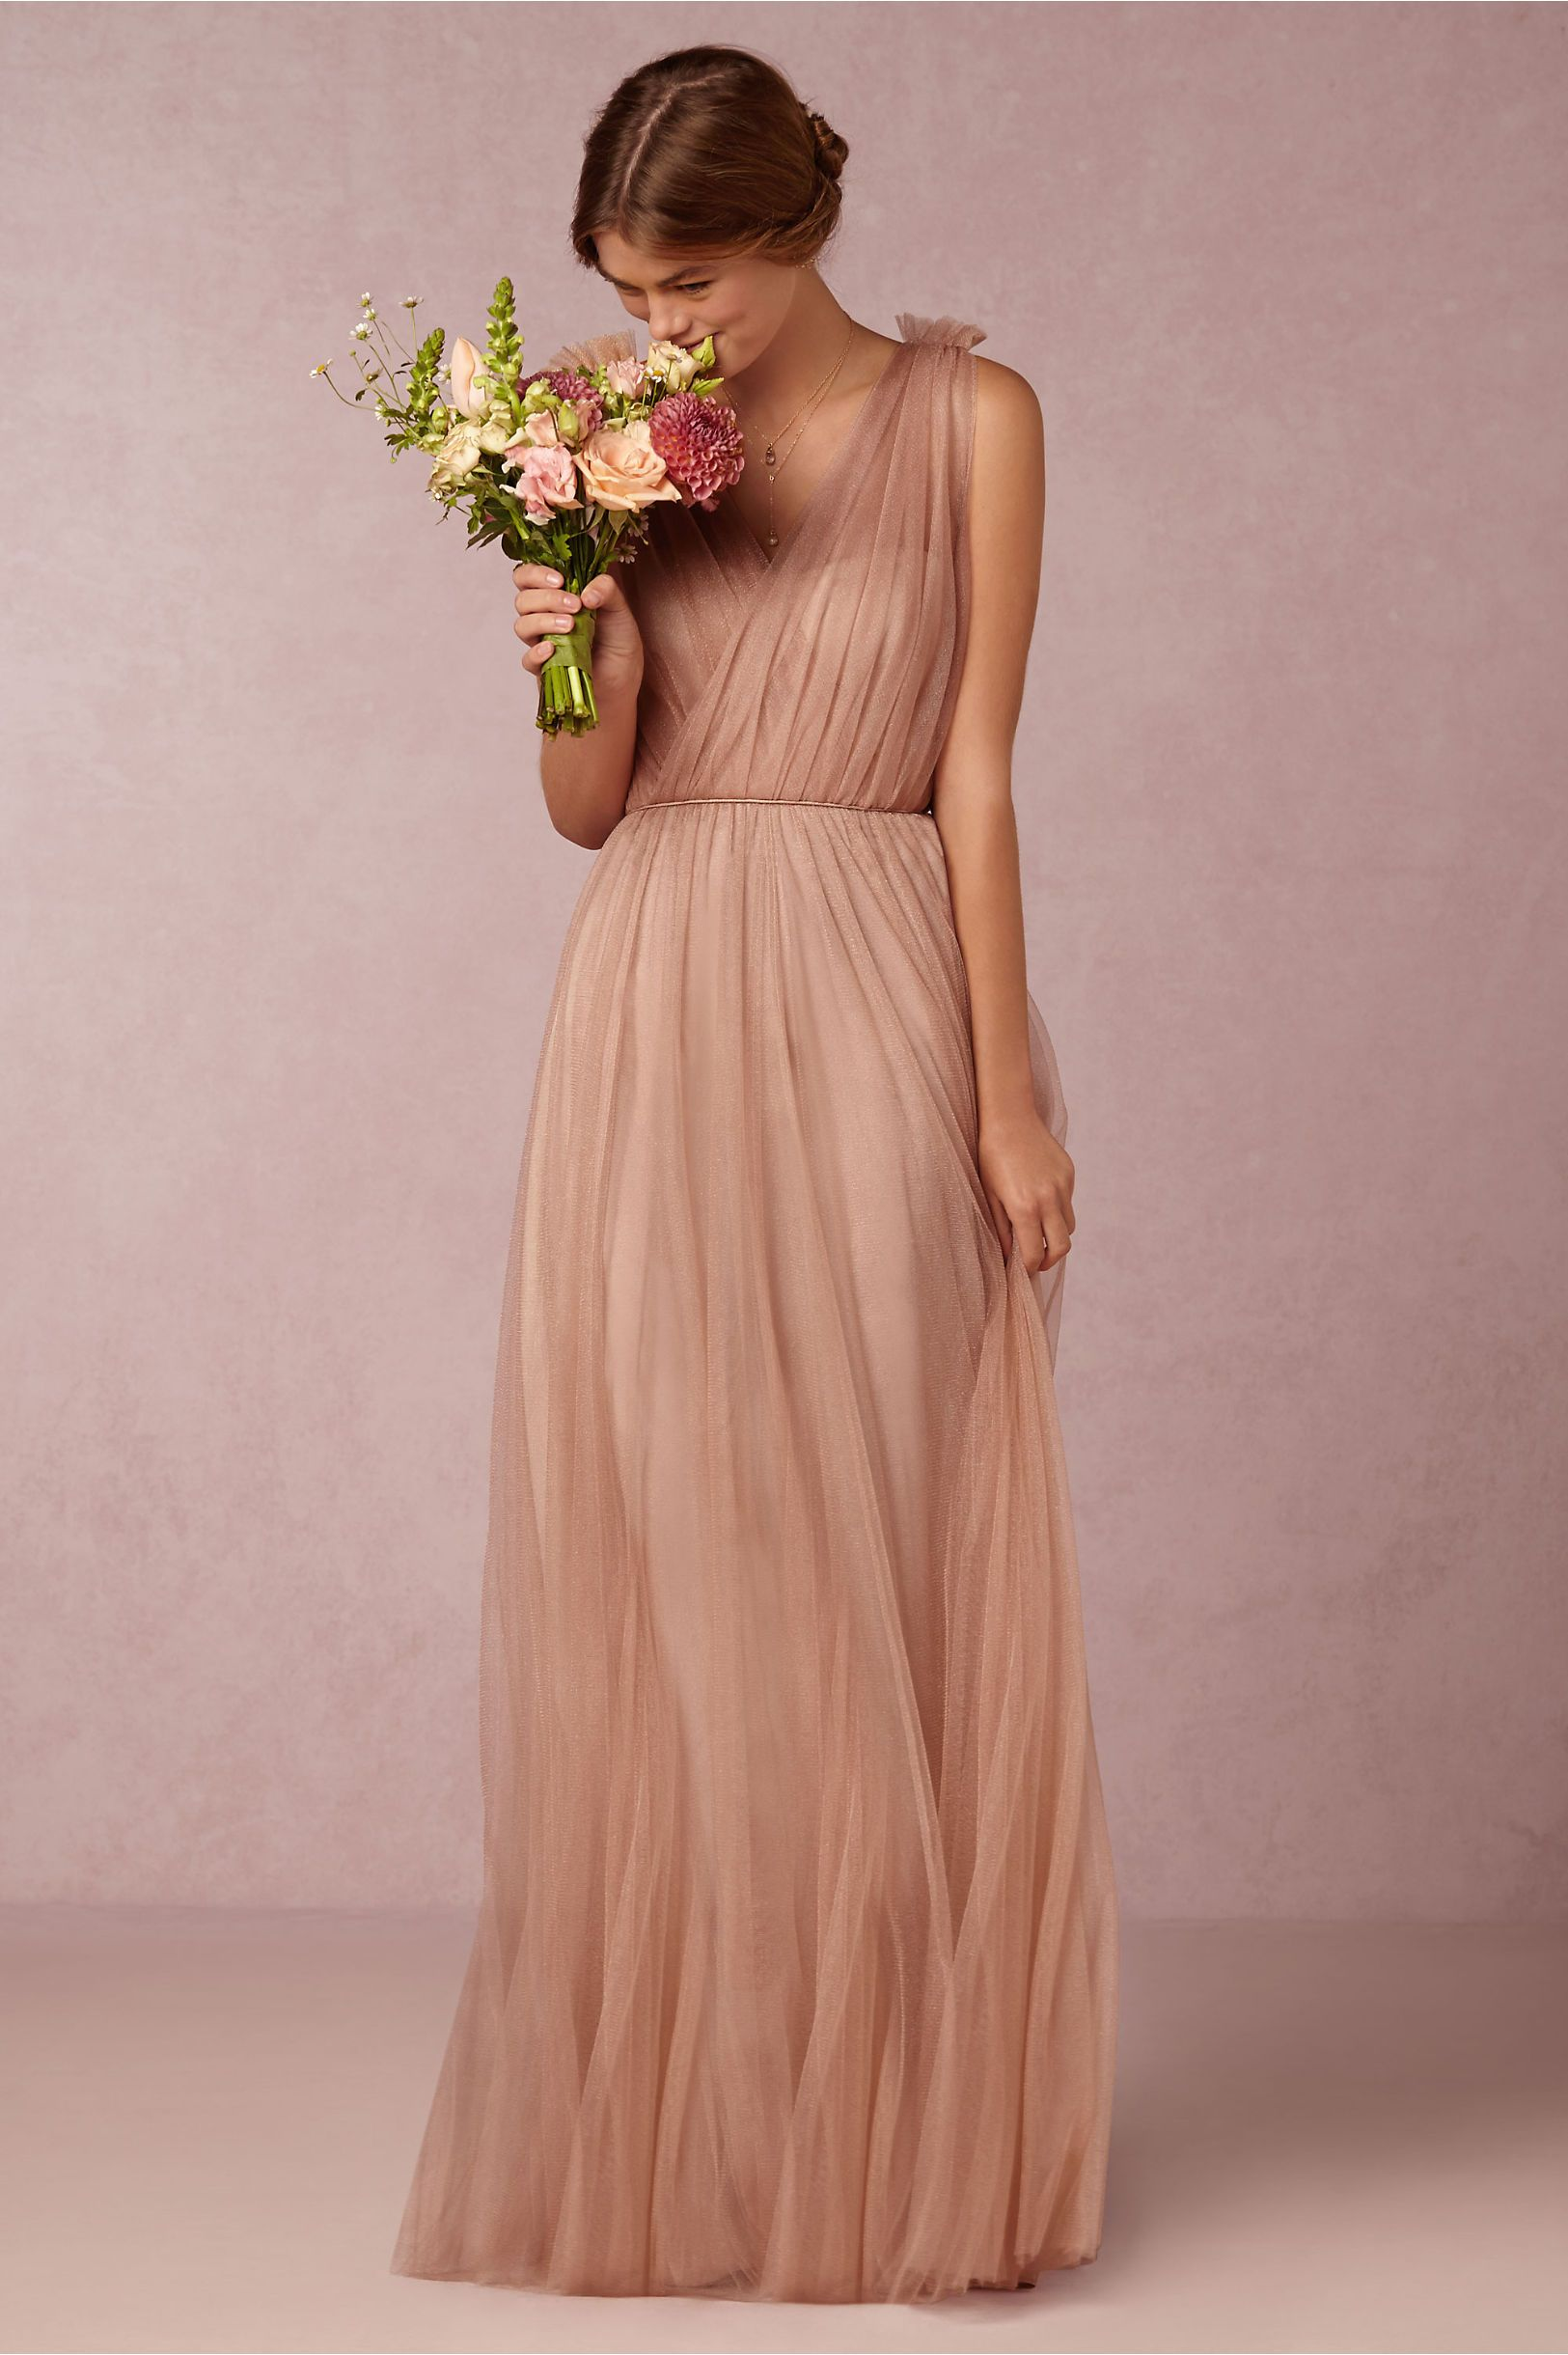 Long pink tulle bridesmaid dress emmy dress in feather from lovely bridesmaid dress emmy dress in bridesmaids bridesmaid dresses at bhldn ombrellifo Images